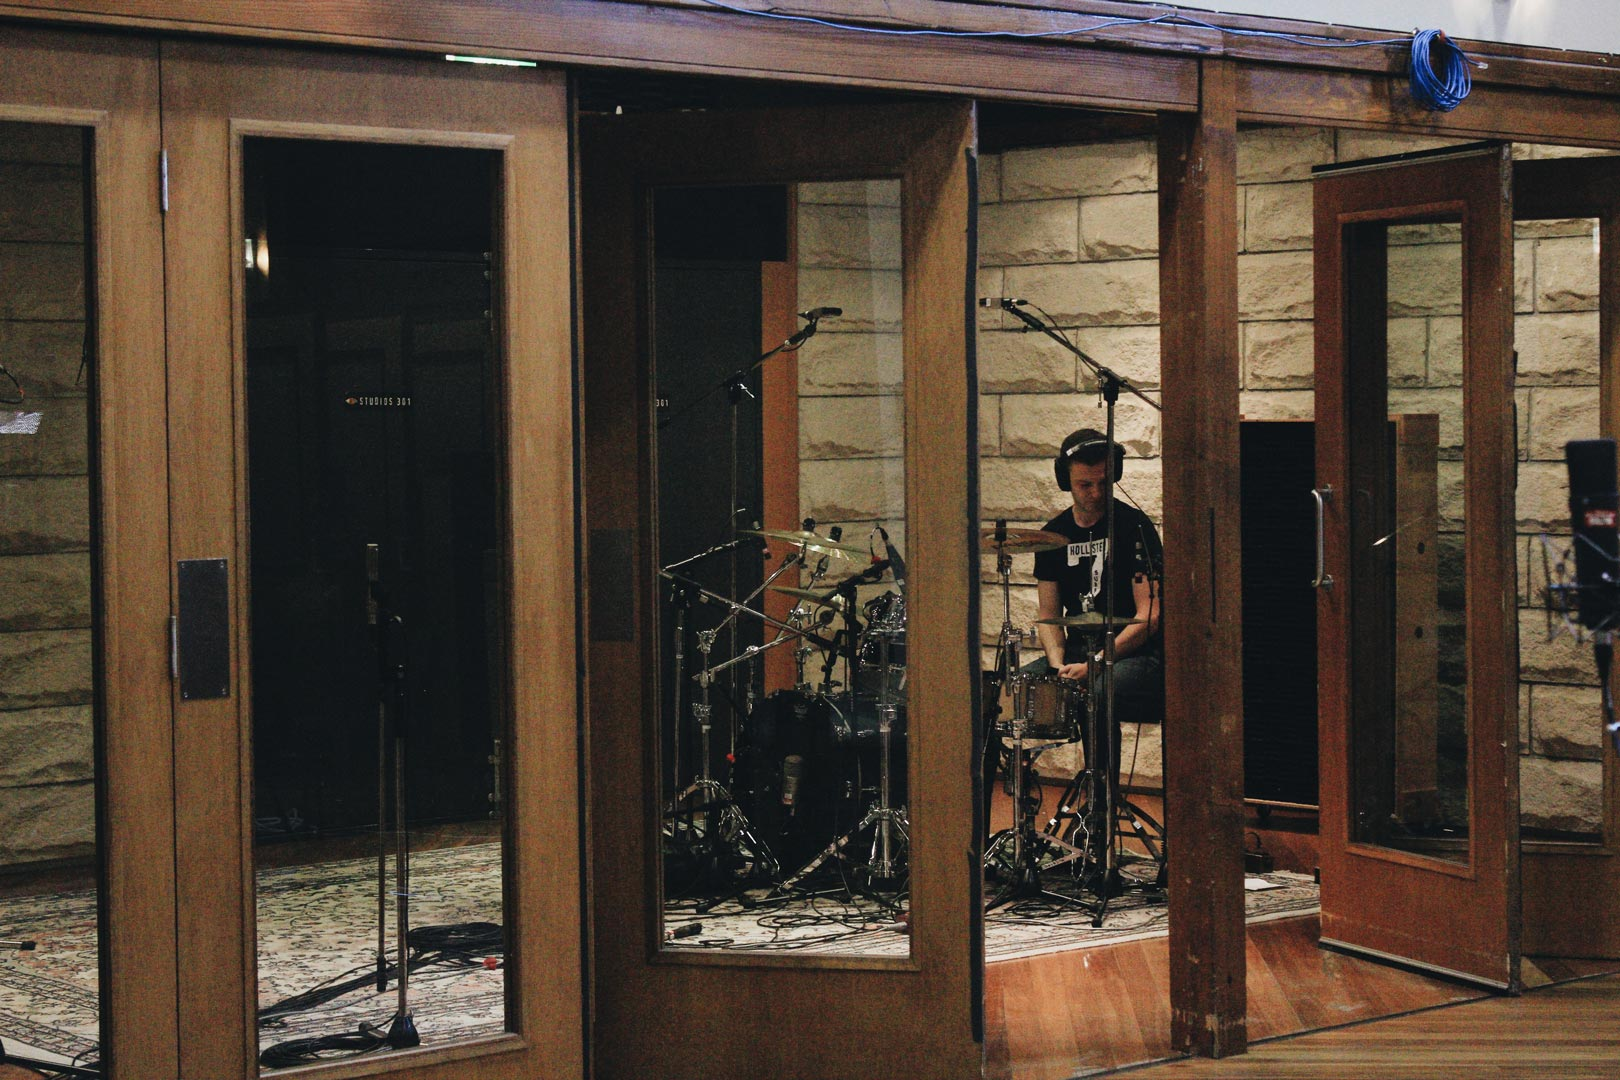 recording-drums-luke-munns.jpg